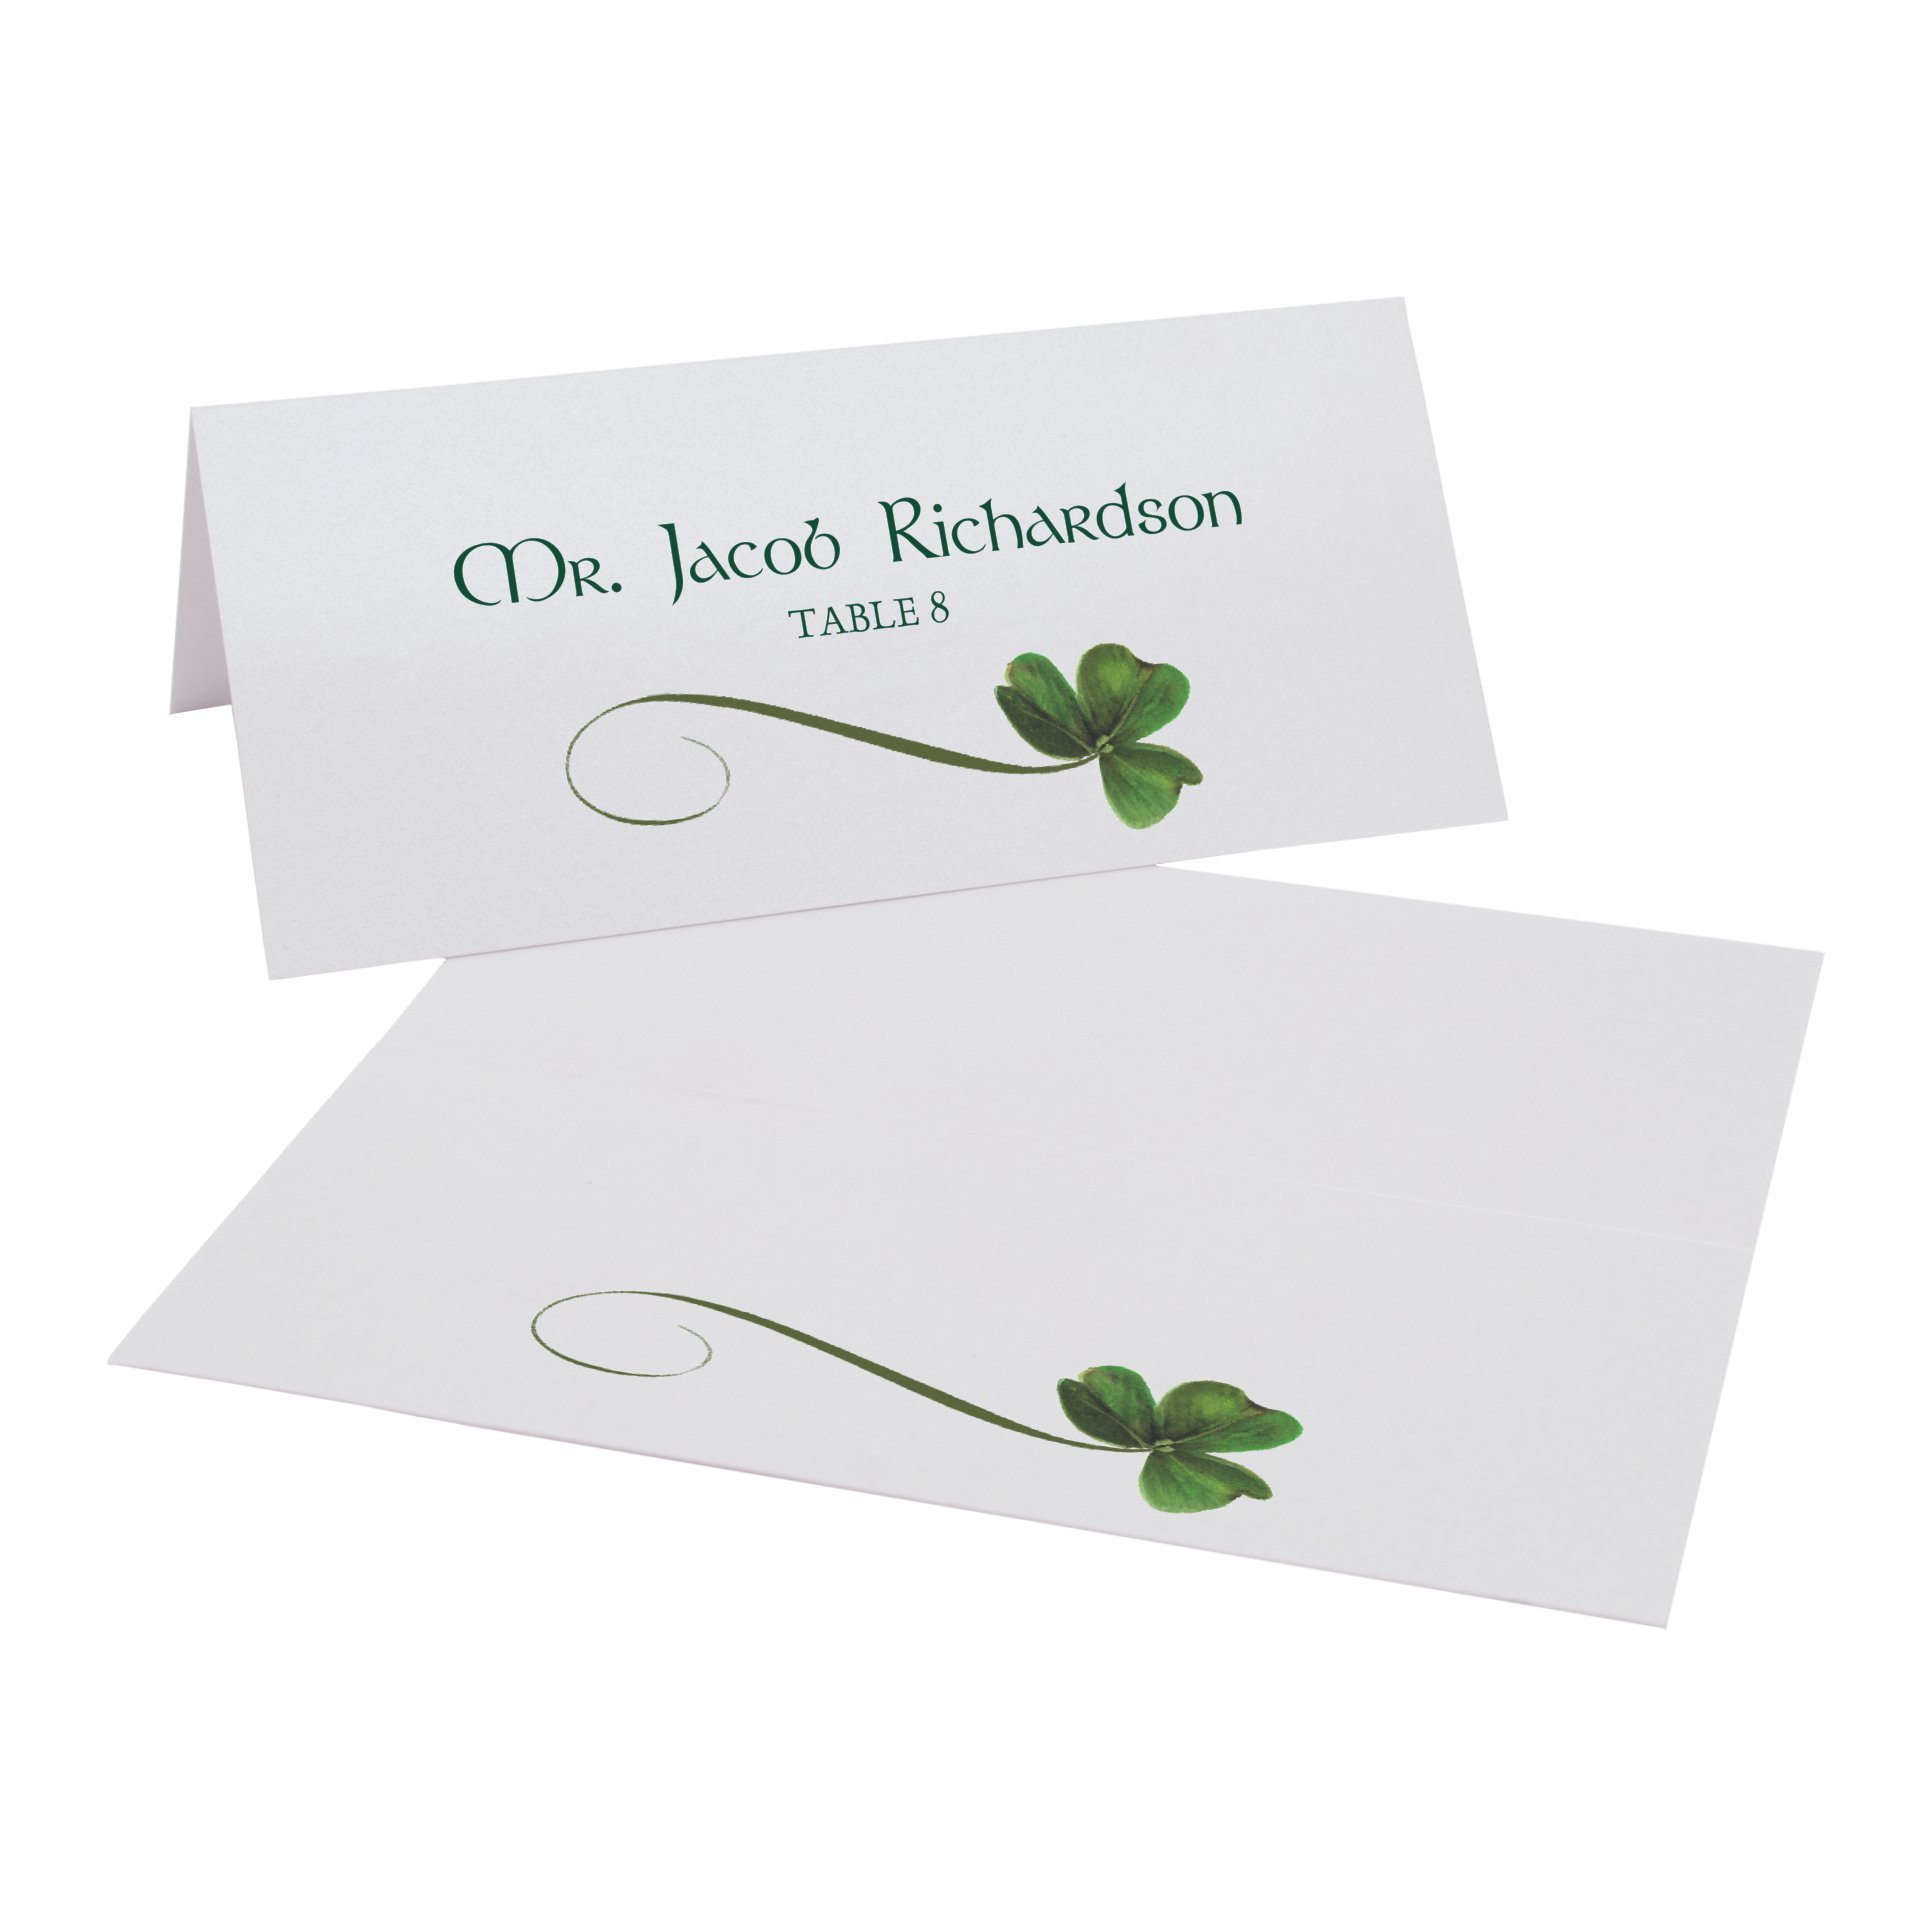 Shamrock Place Cards, Pearl White, Set of 375 by Documents and Designs